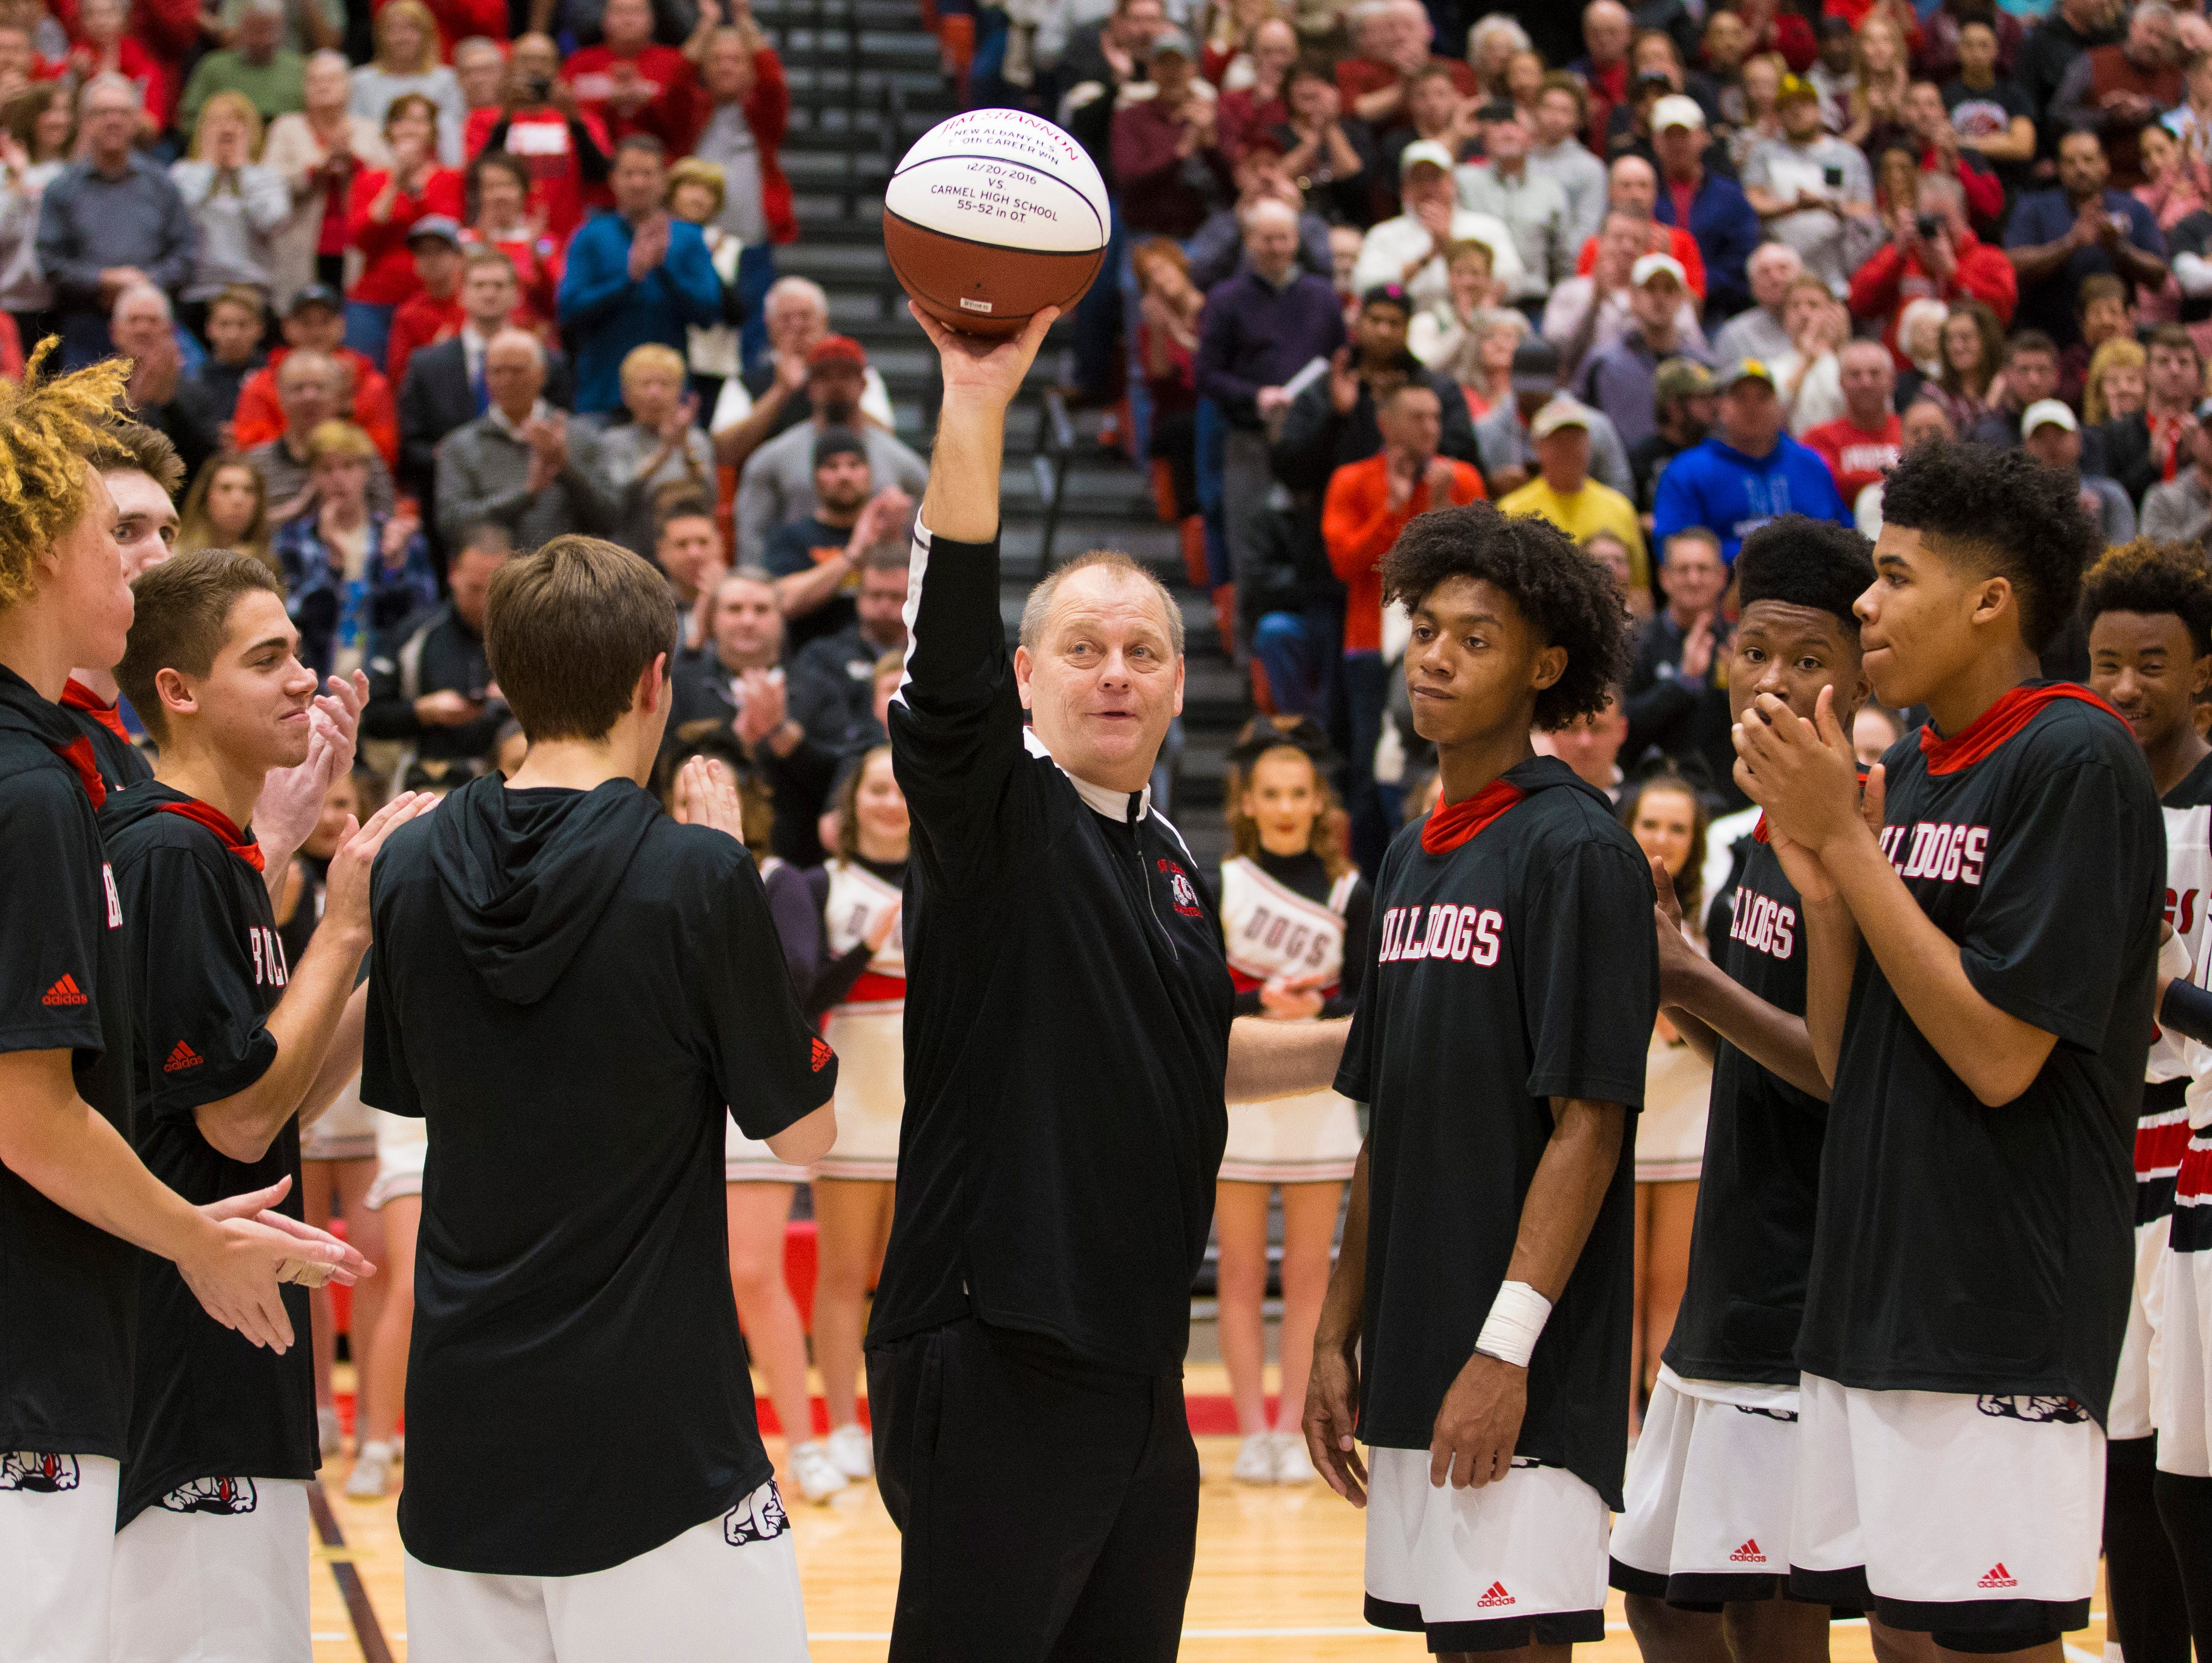 New Albany head coach Jim Shannon holds up a ball honoring his 500th career win as a head coach in Indiana.